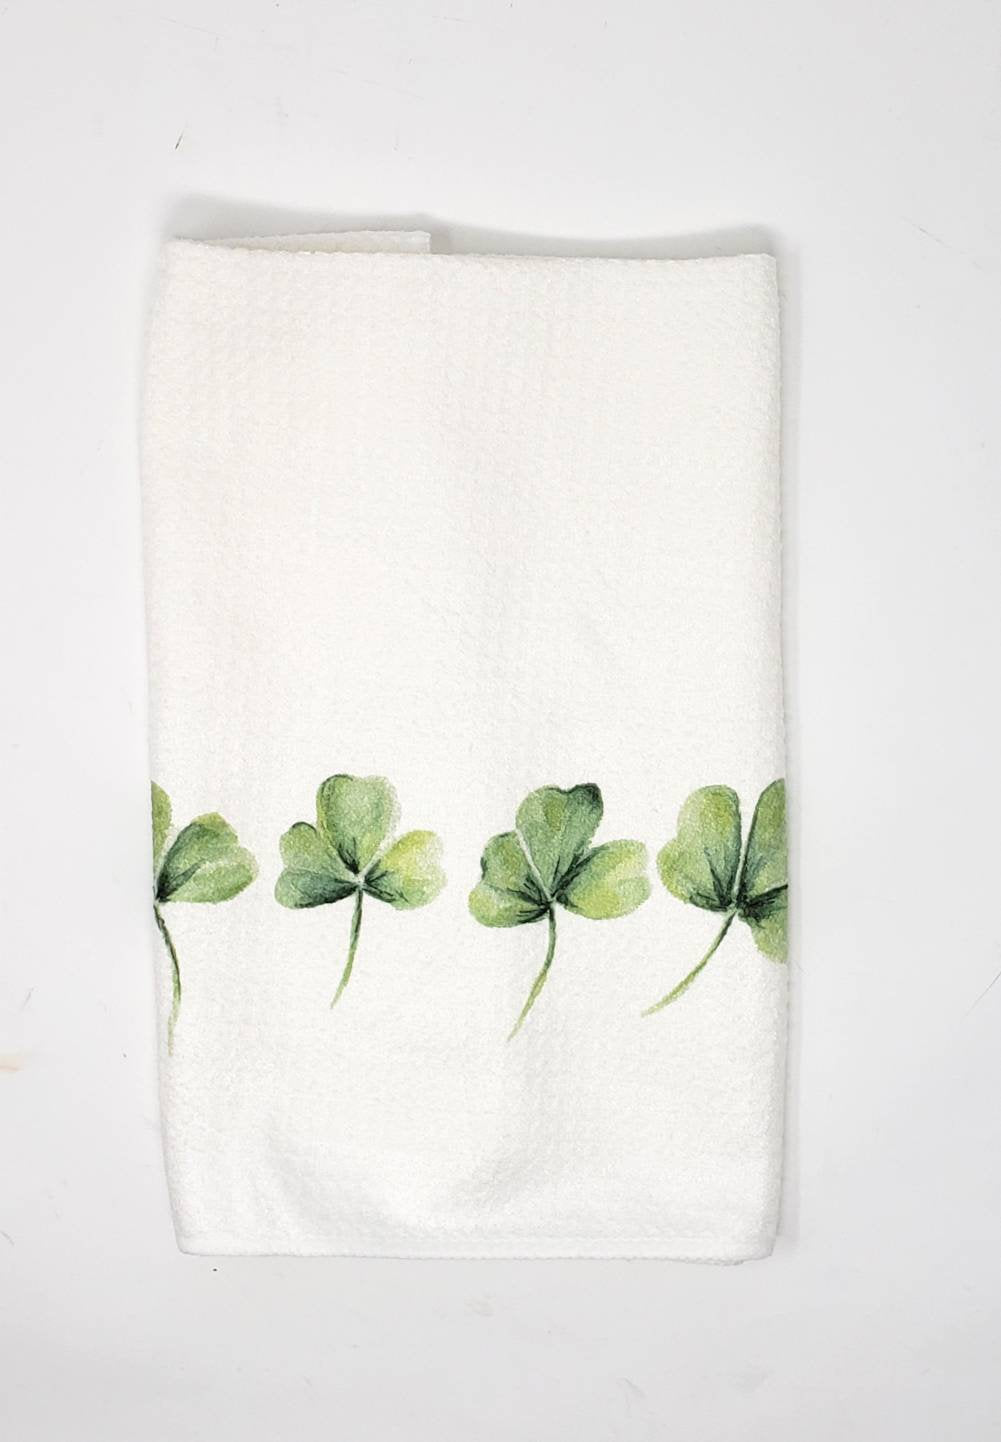 Shamrock Tea Towel Shamrocks Kitchen Towel Irish decor Irish git Ireland gift for home Irish art Ireland painting St. Patricks Day - Leigh Barry Watercolors